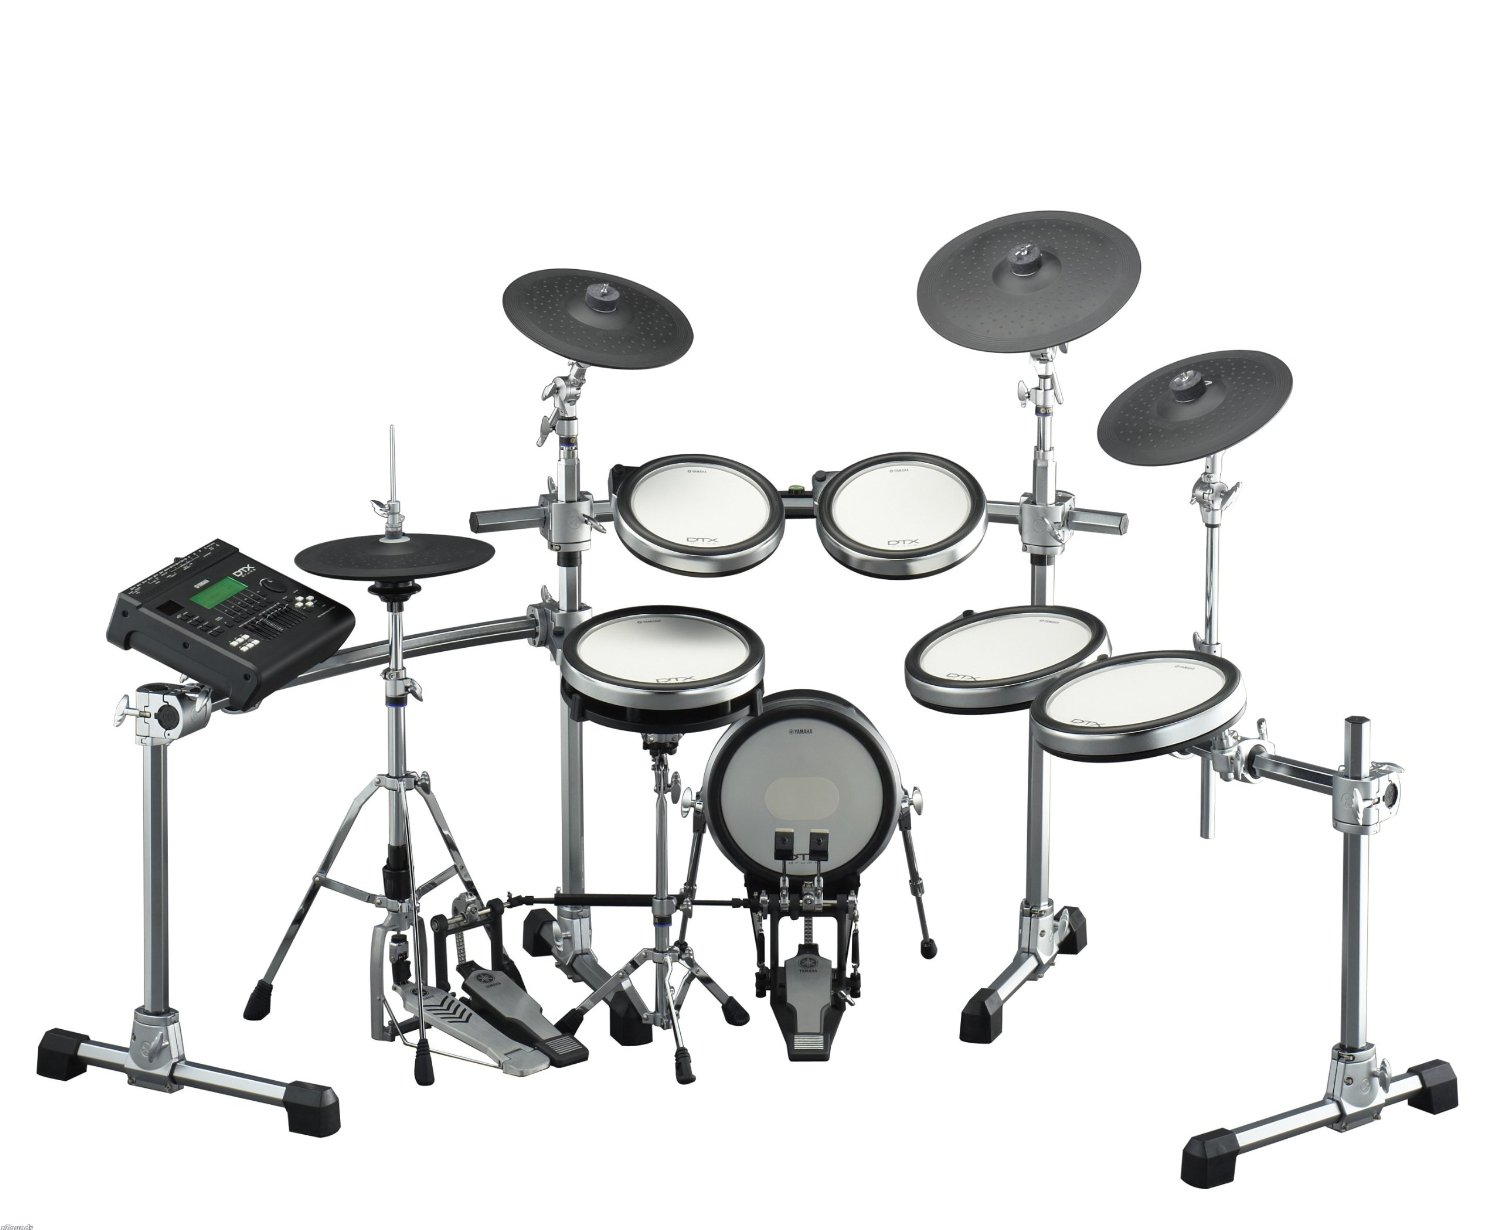 1500x1230 Dtx950k Electronic Drum Kit Review